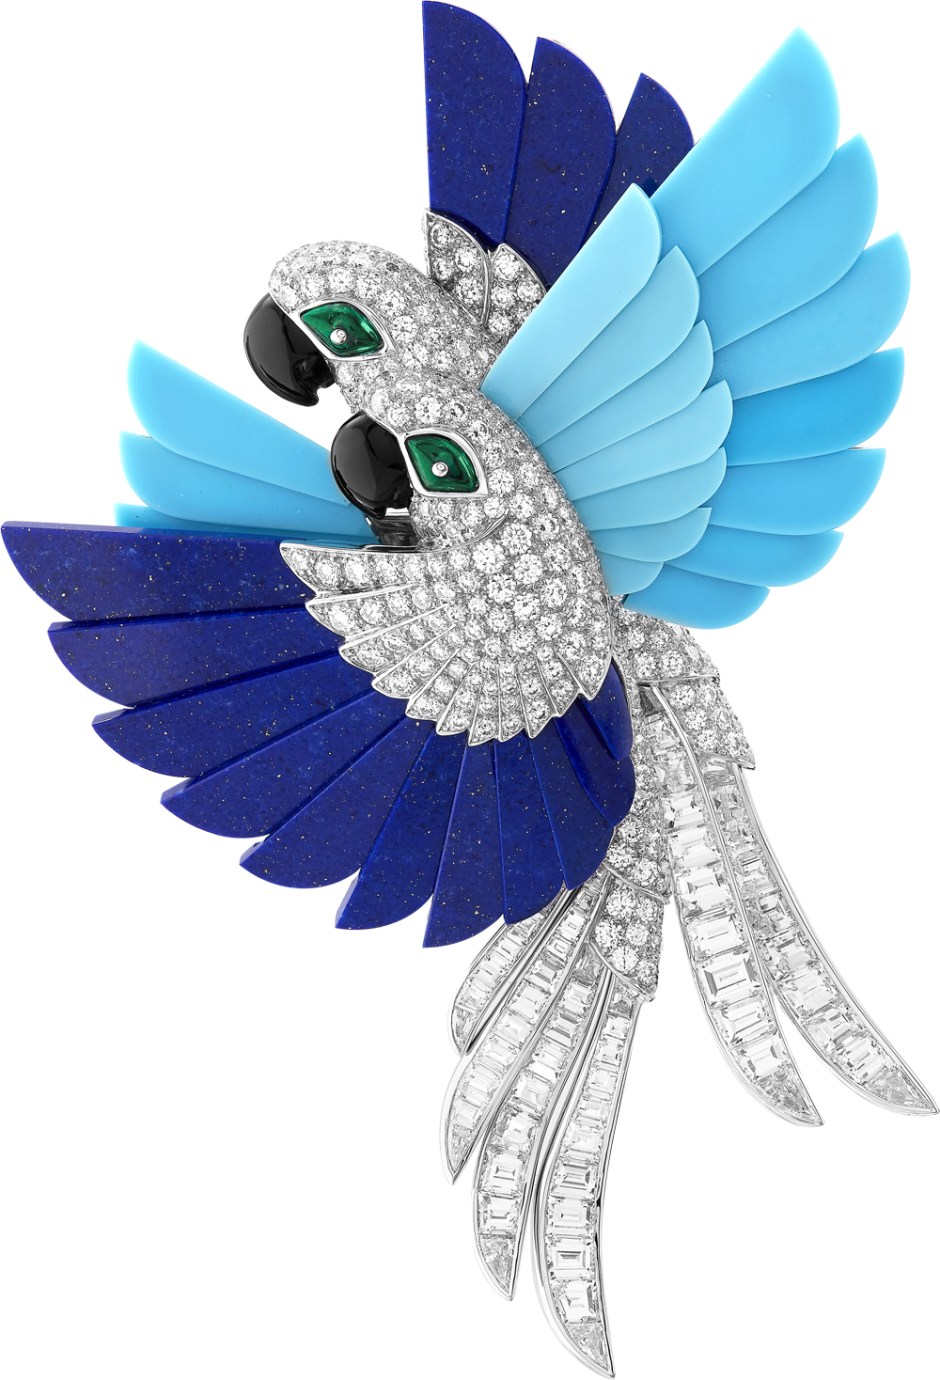 Arche de Noé, Perroquet brooch. White gold, round and baguette-cut diamonds, emerald beads, lapis lazuli, turquoise, onyx